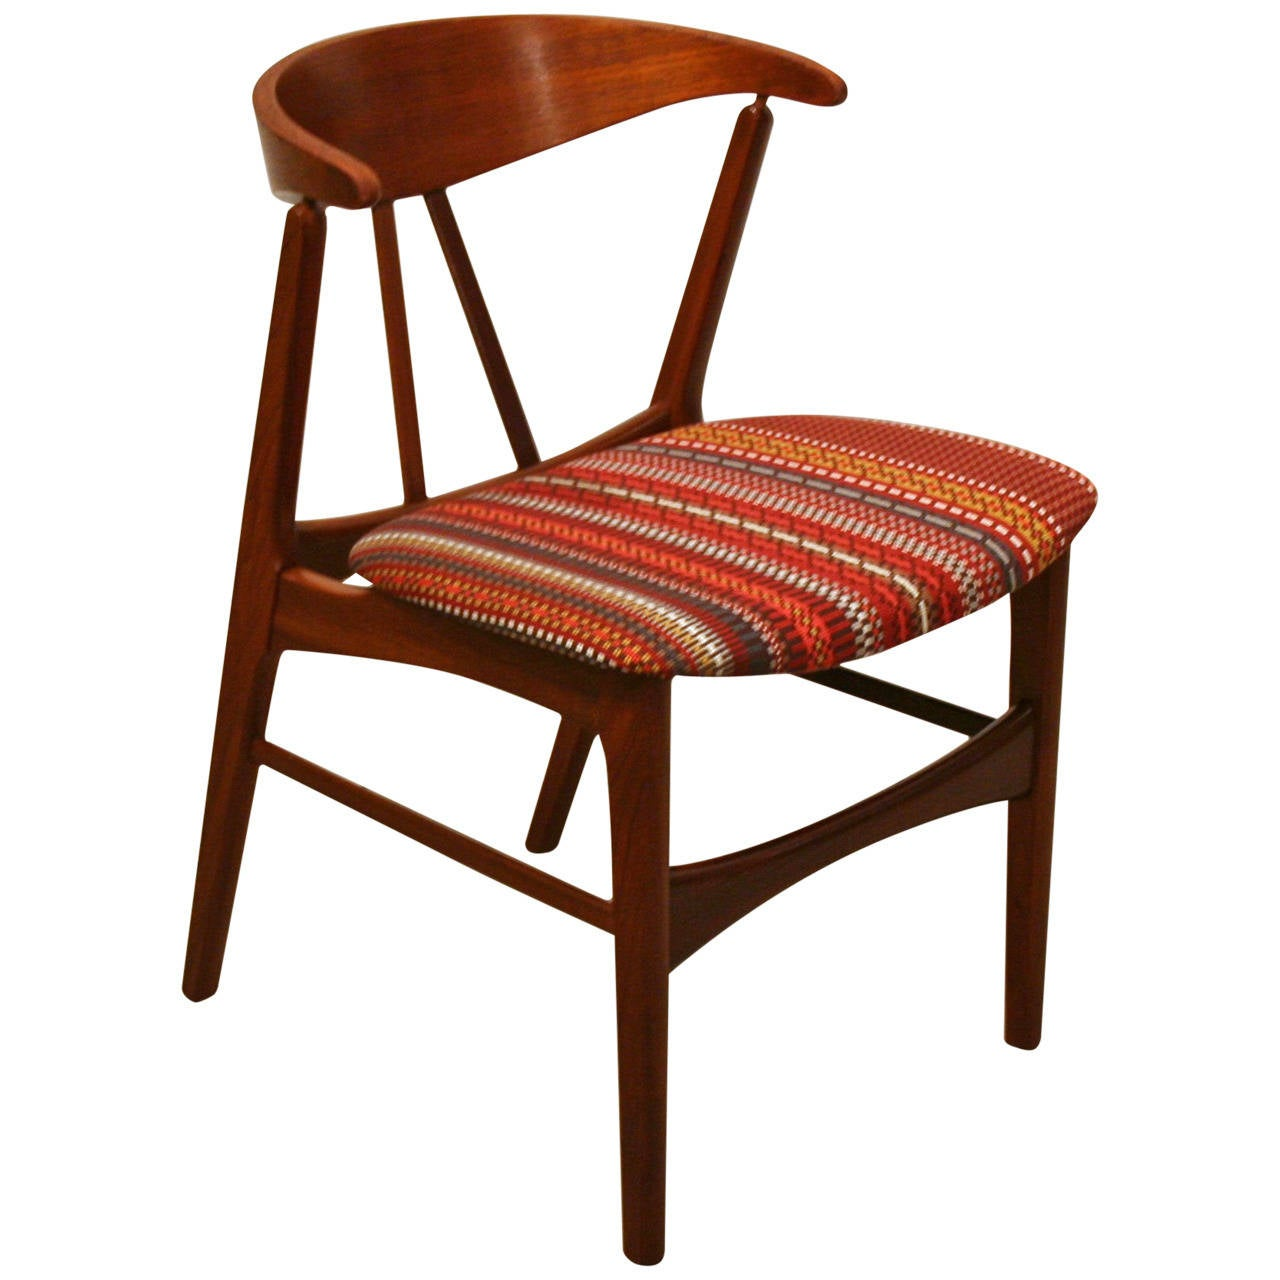 Vintage Accent Chair Vintage Teak Accent Chair At 1stdibs